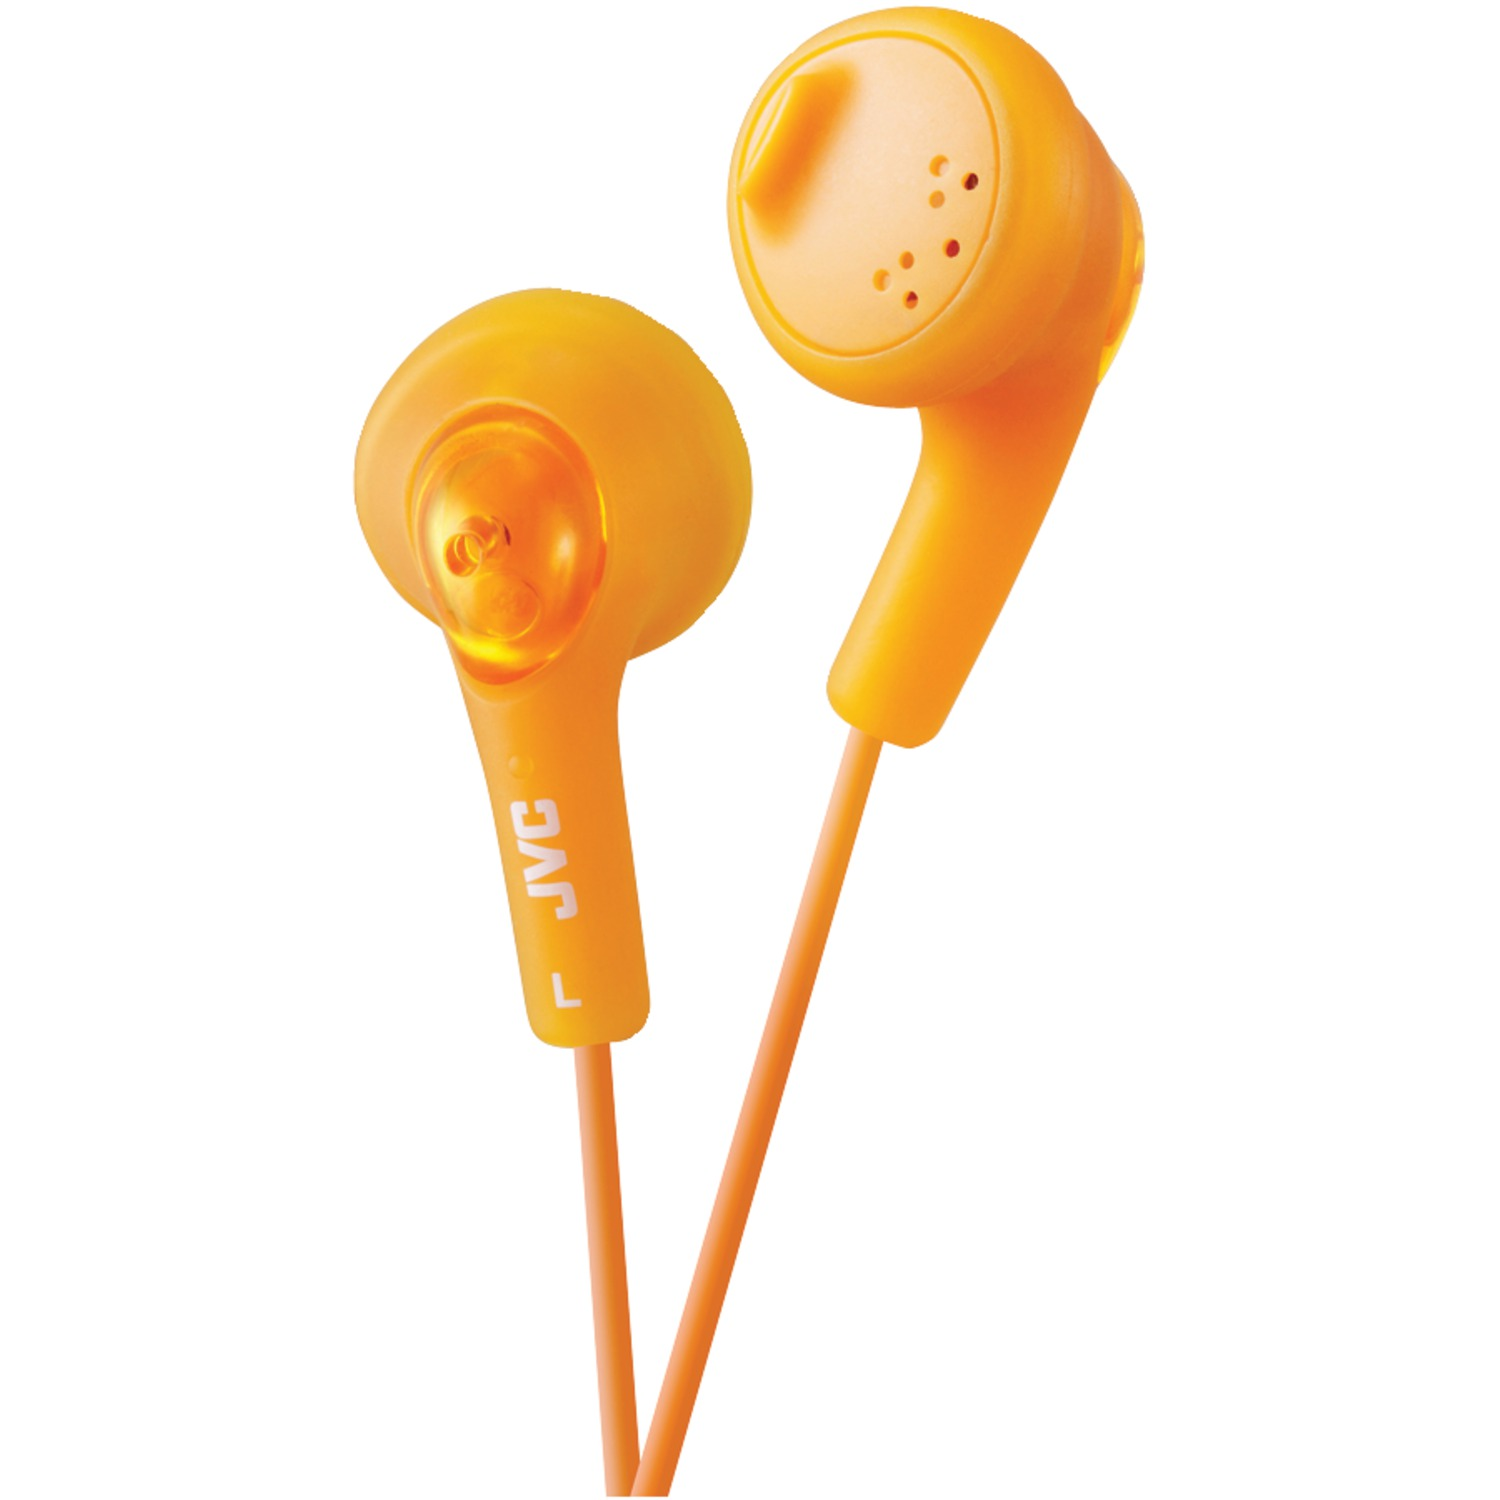 Image for Jvc Basic Gummy Earbuds Orange from Circuit City